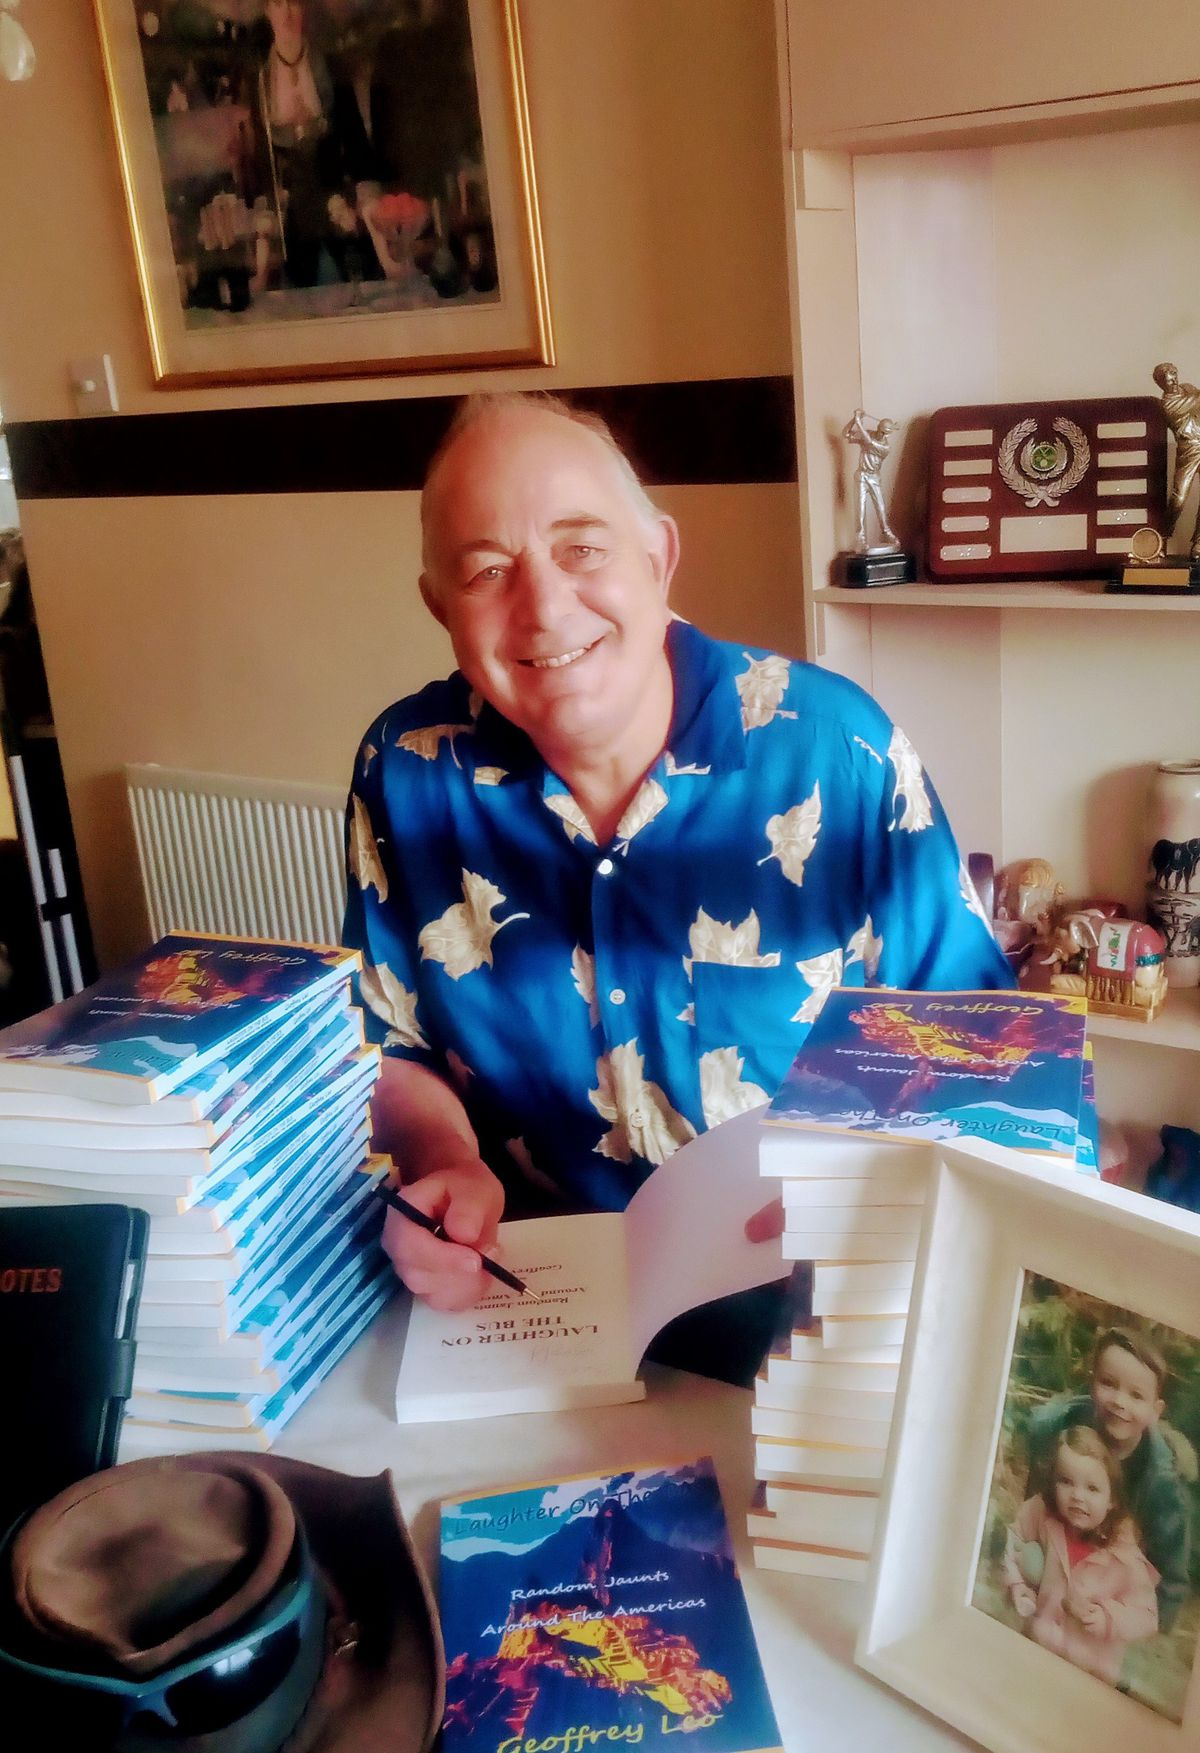 Geoff with his books